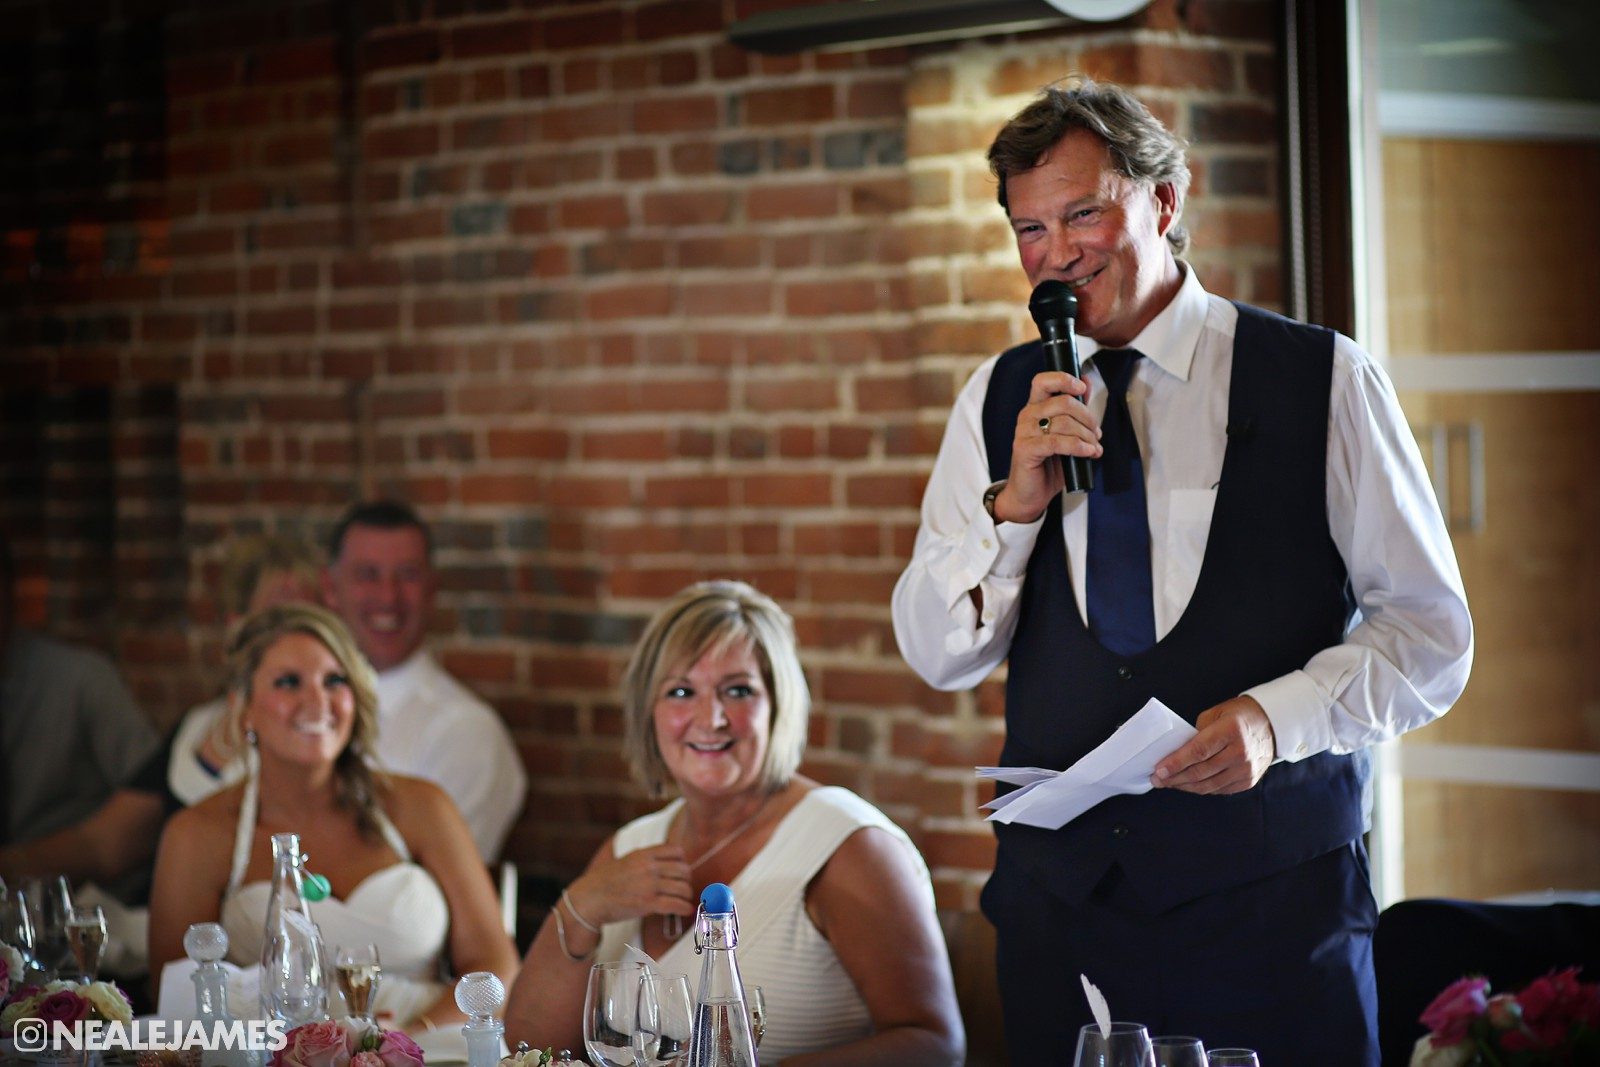 Colour picture of Glenn Hoddle making a speech at his daughter's wedding